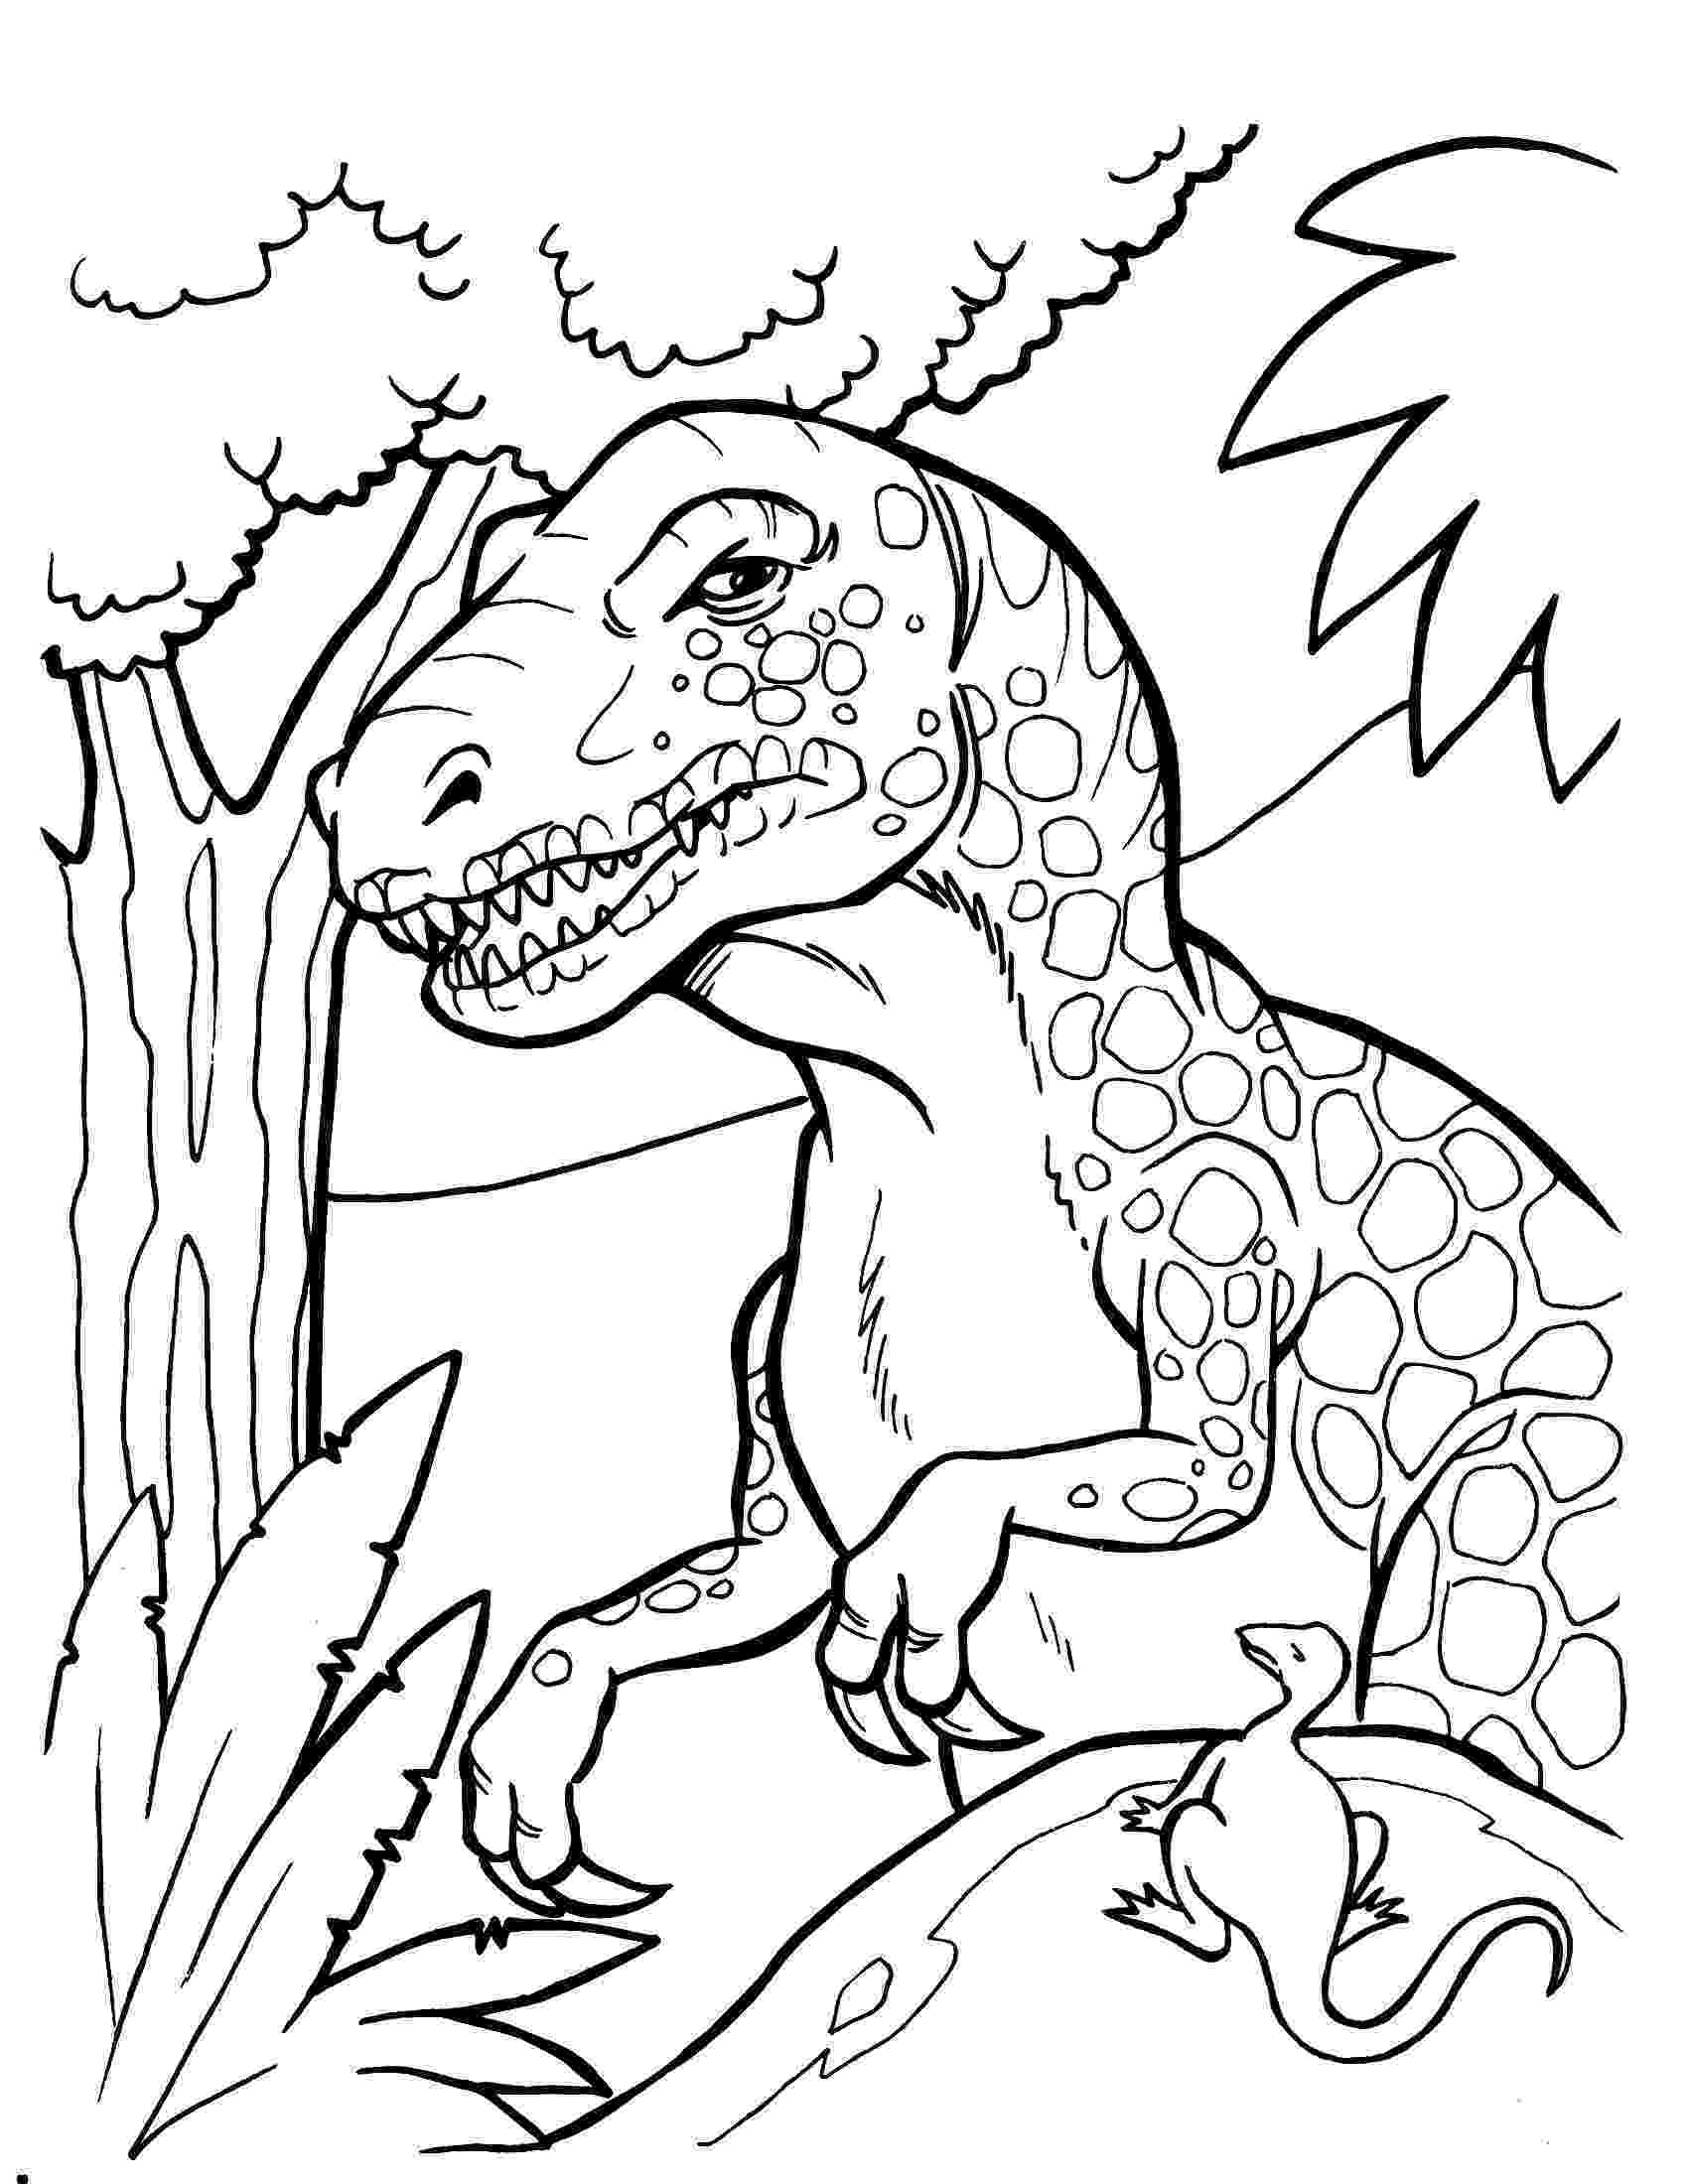 printable dinosaur pictures to color coloring pages dinosaur free printable coloring pages to printable color dinosaur pictures